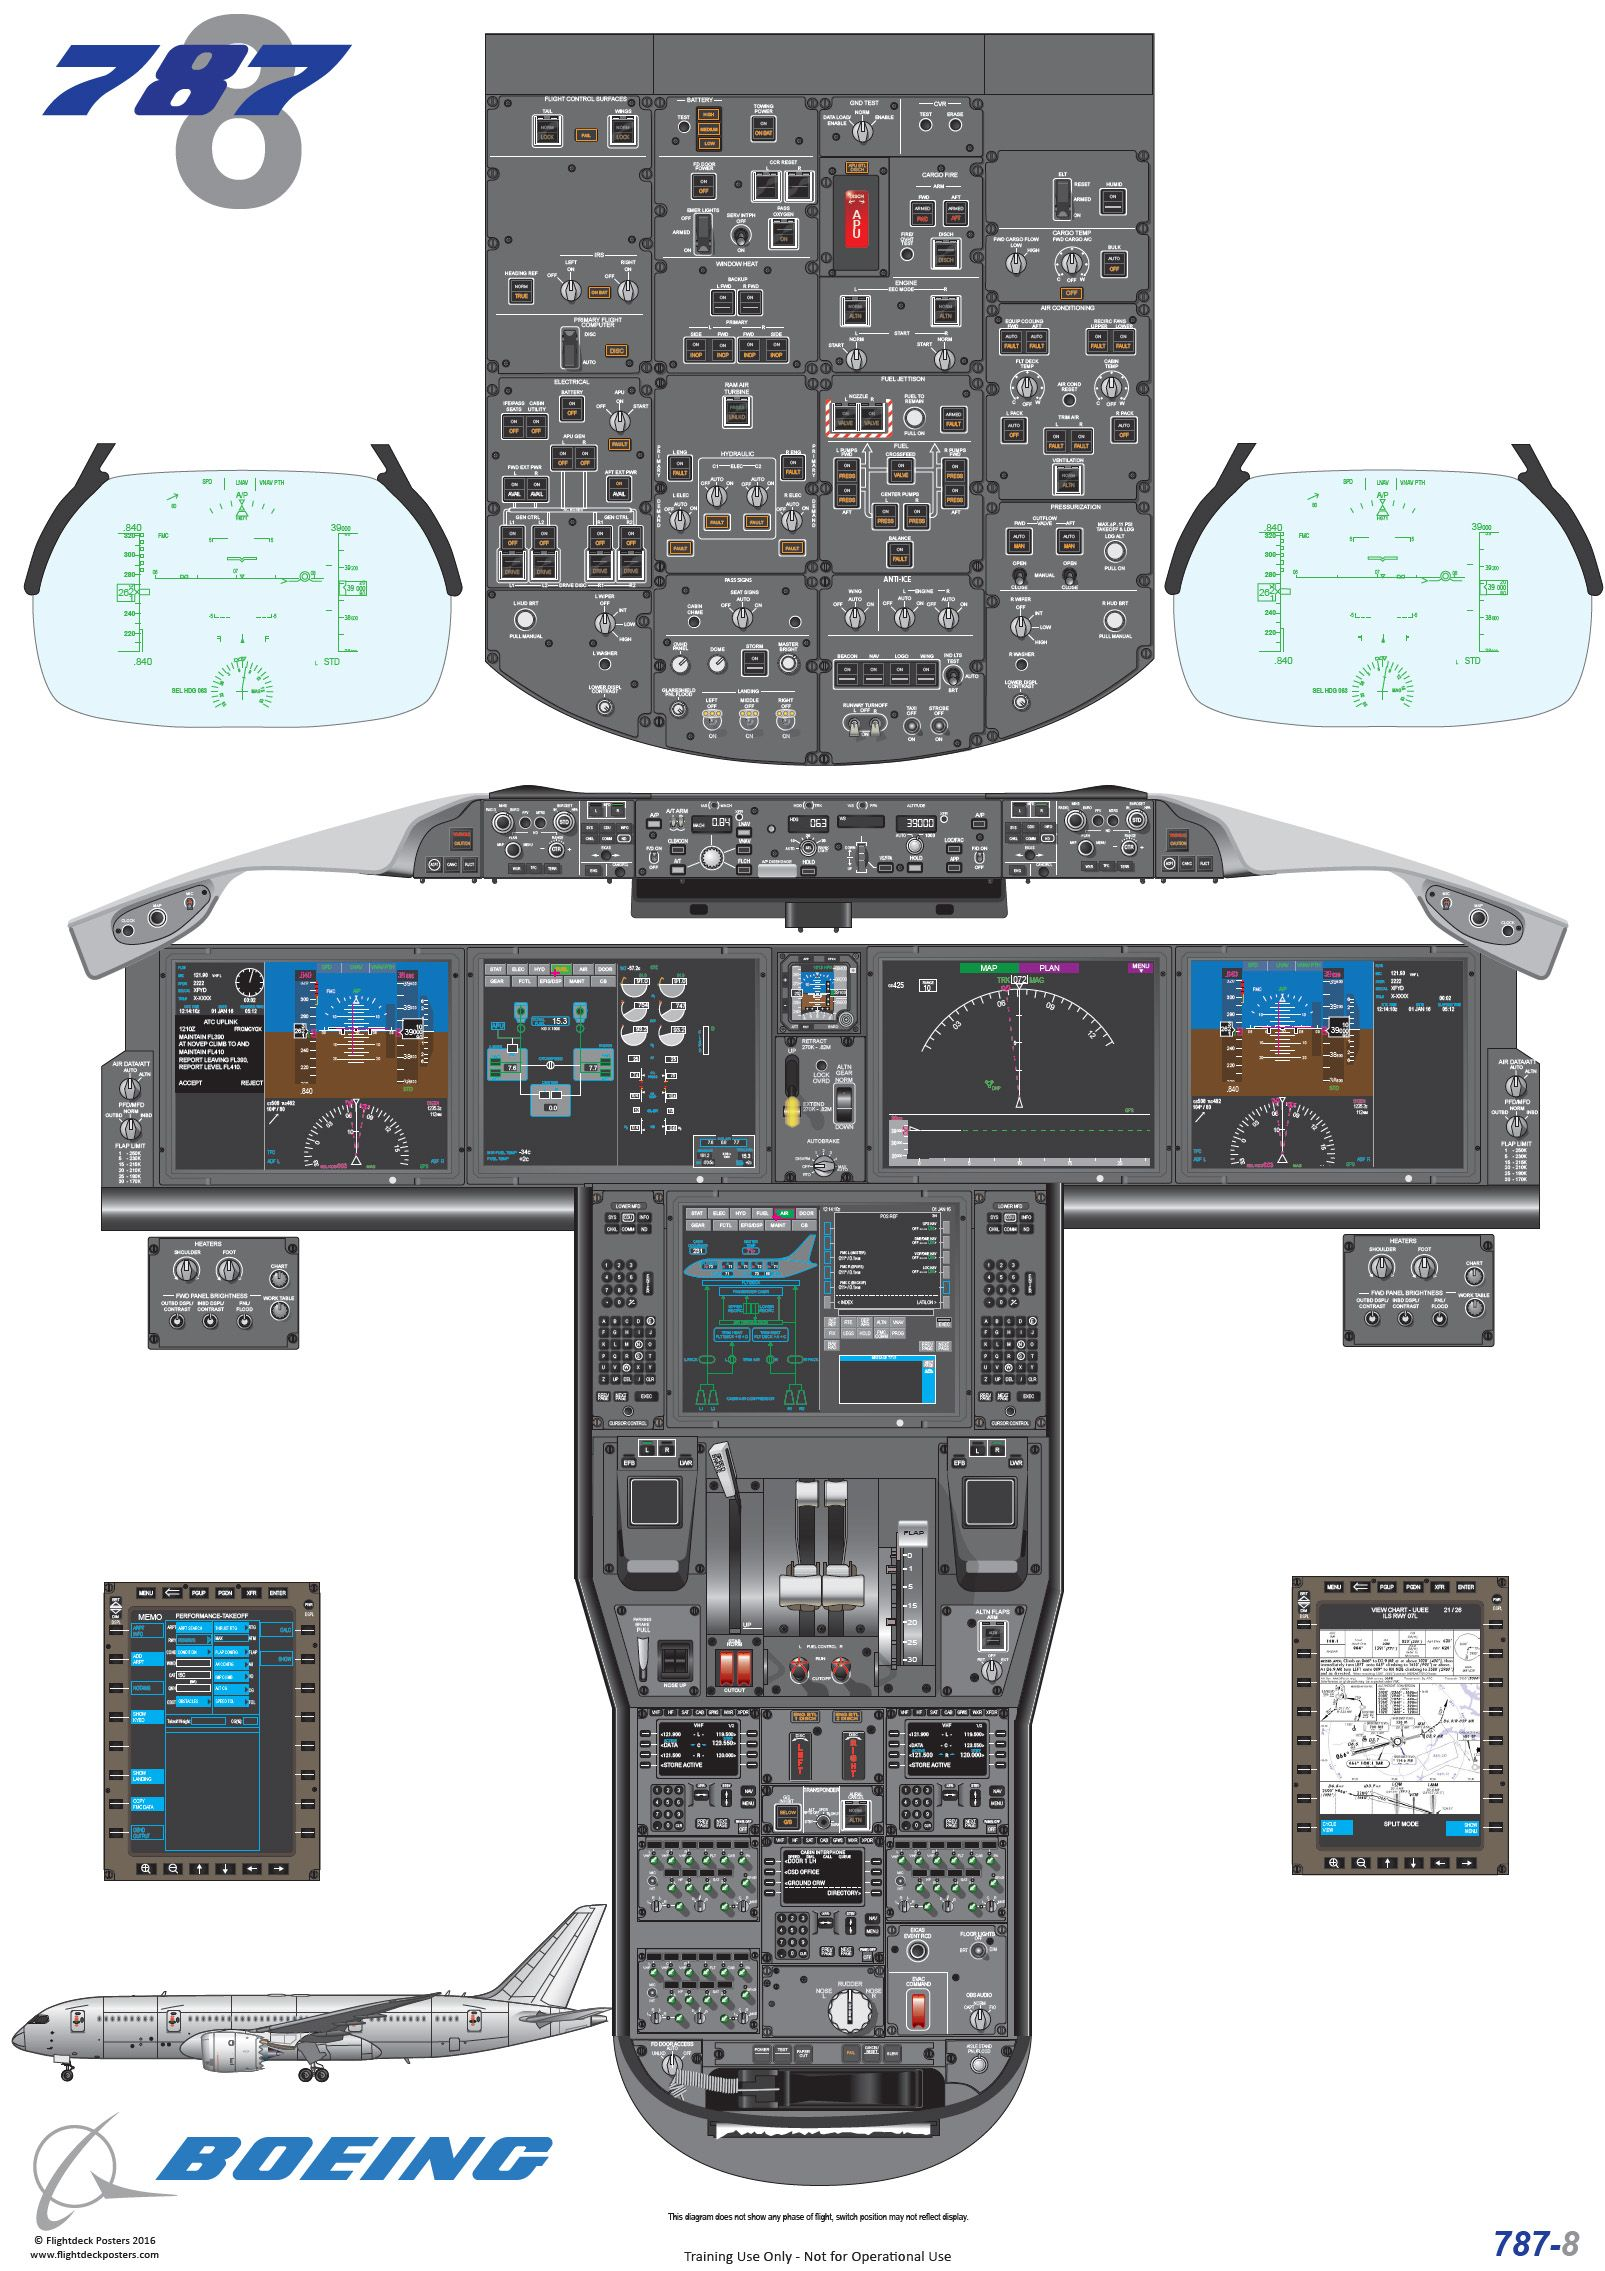 small resolution of boeing 787 8 cockpit diagram used for training pilots